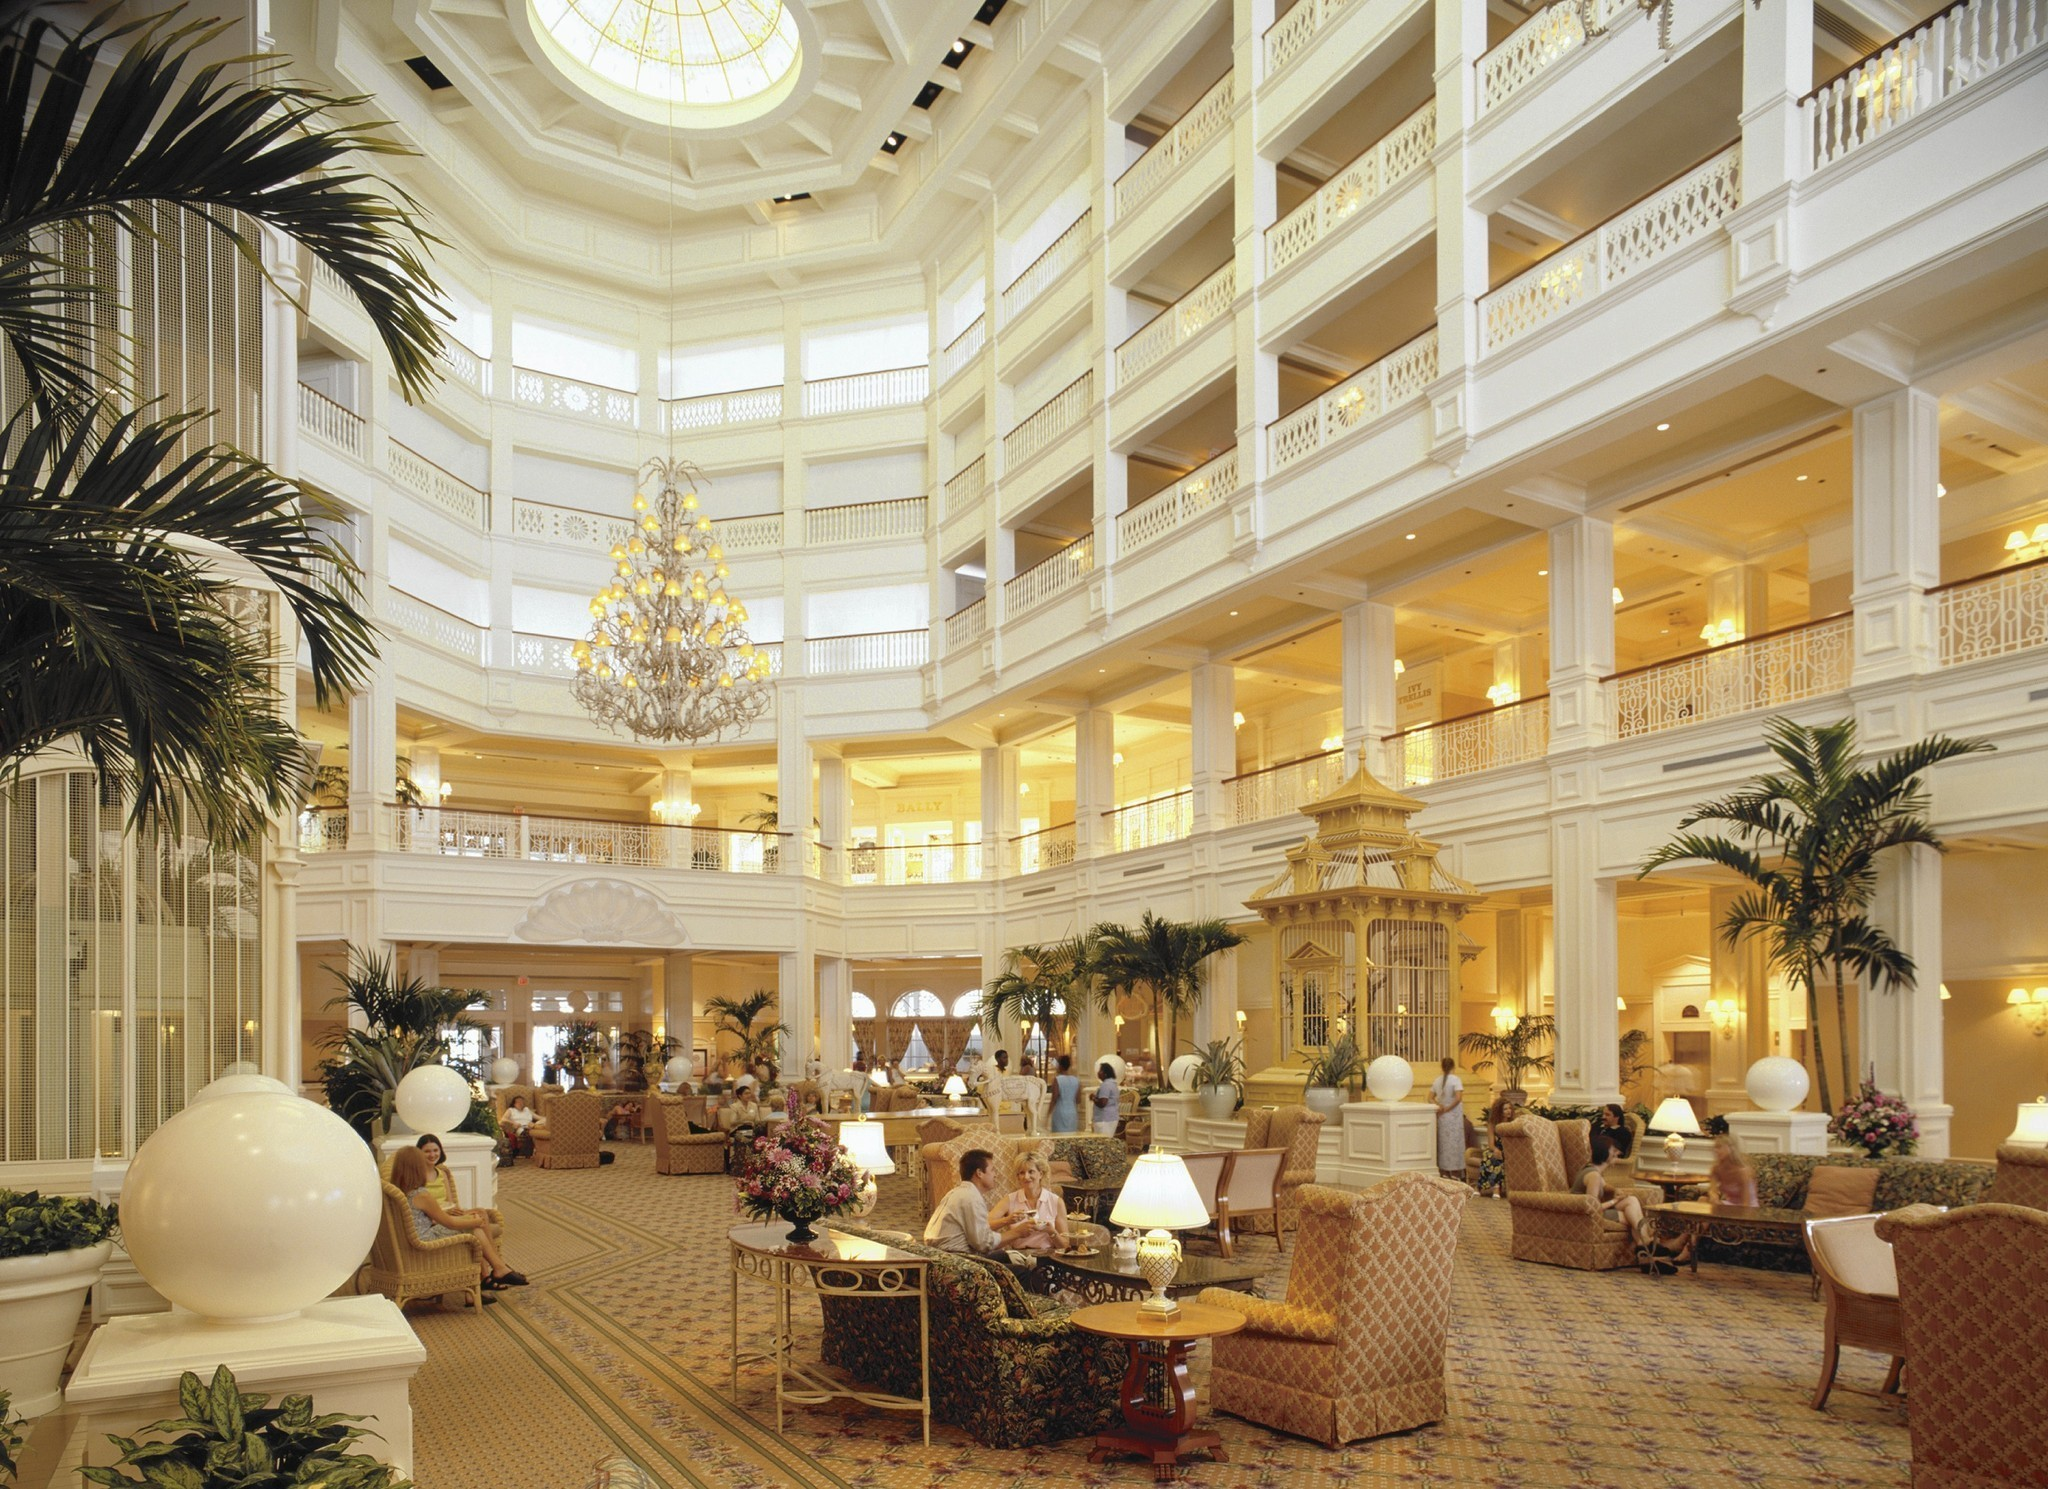 Grand Floridian suites at Disney getting a new look - Orlando Sentinel